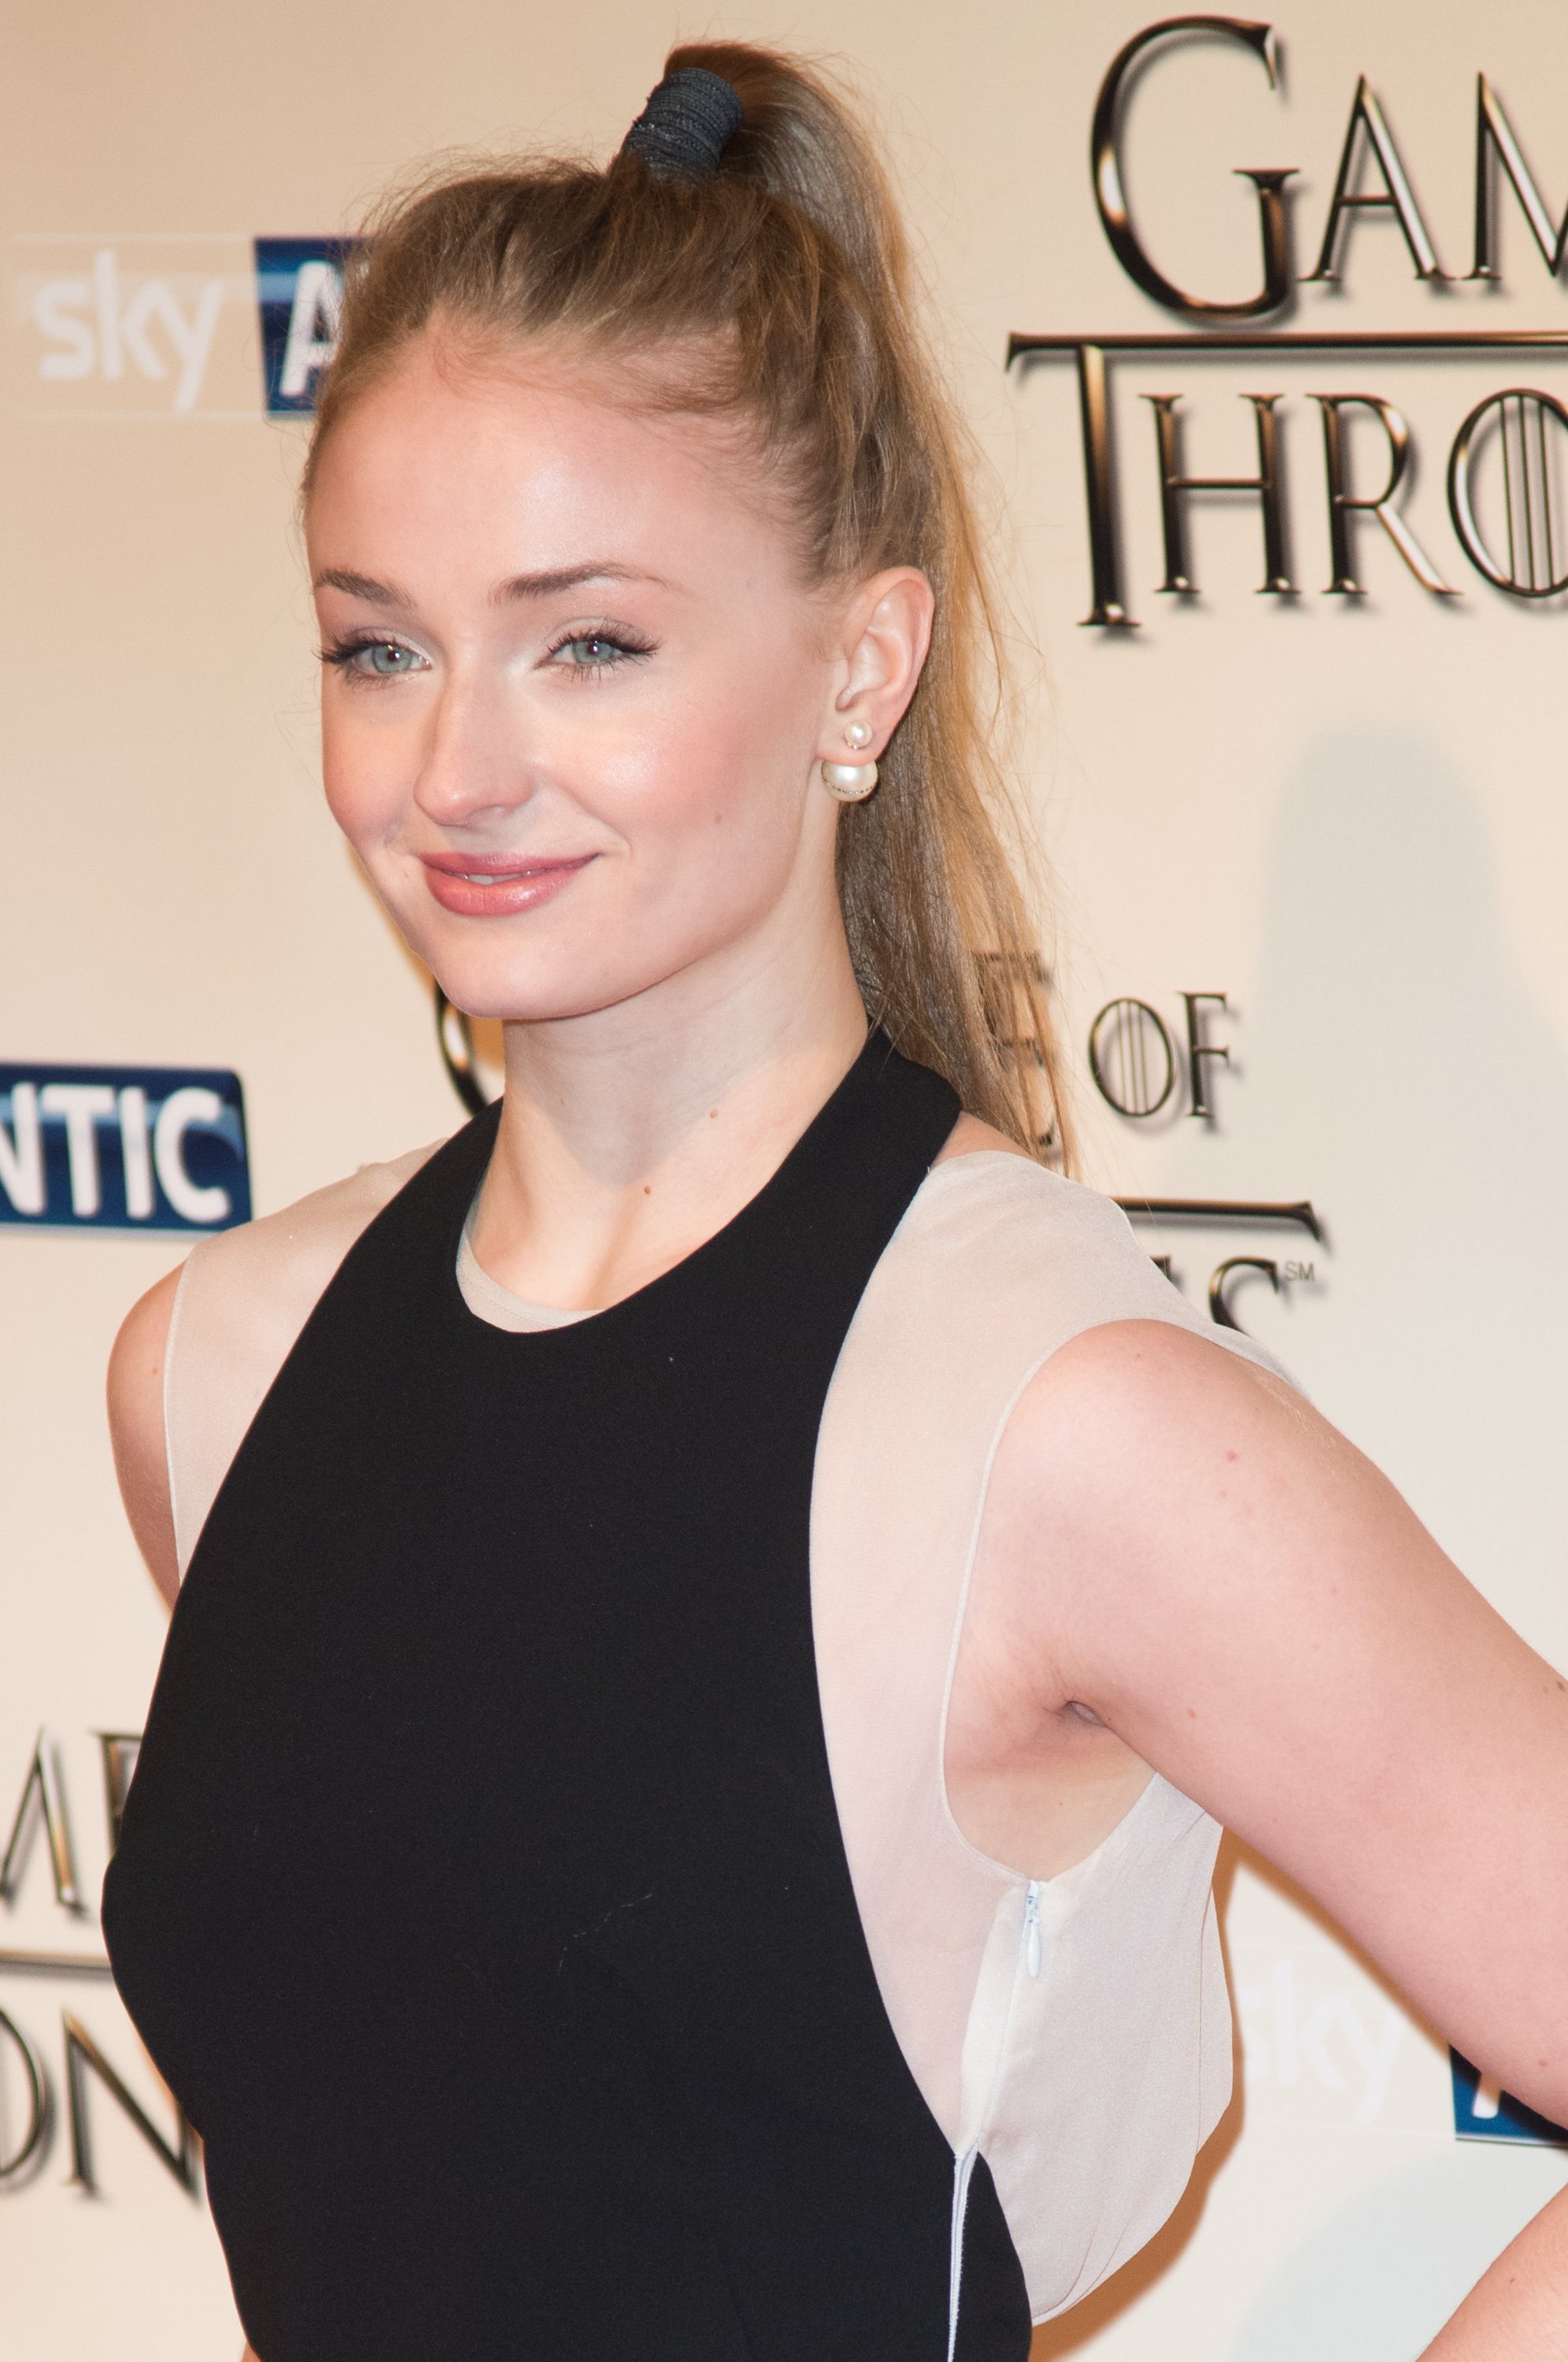 sophie turner actress photo 480 of 713 pics wallpaper